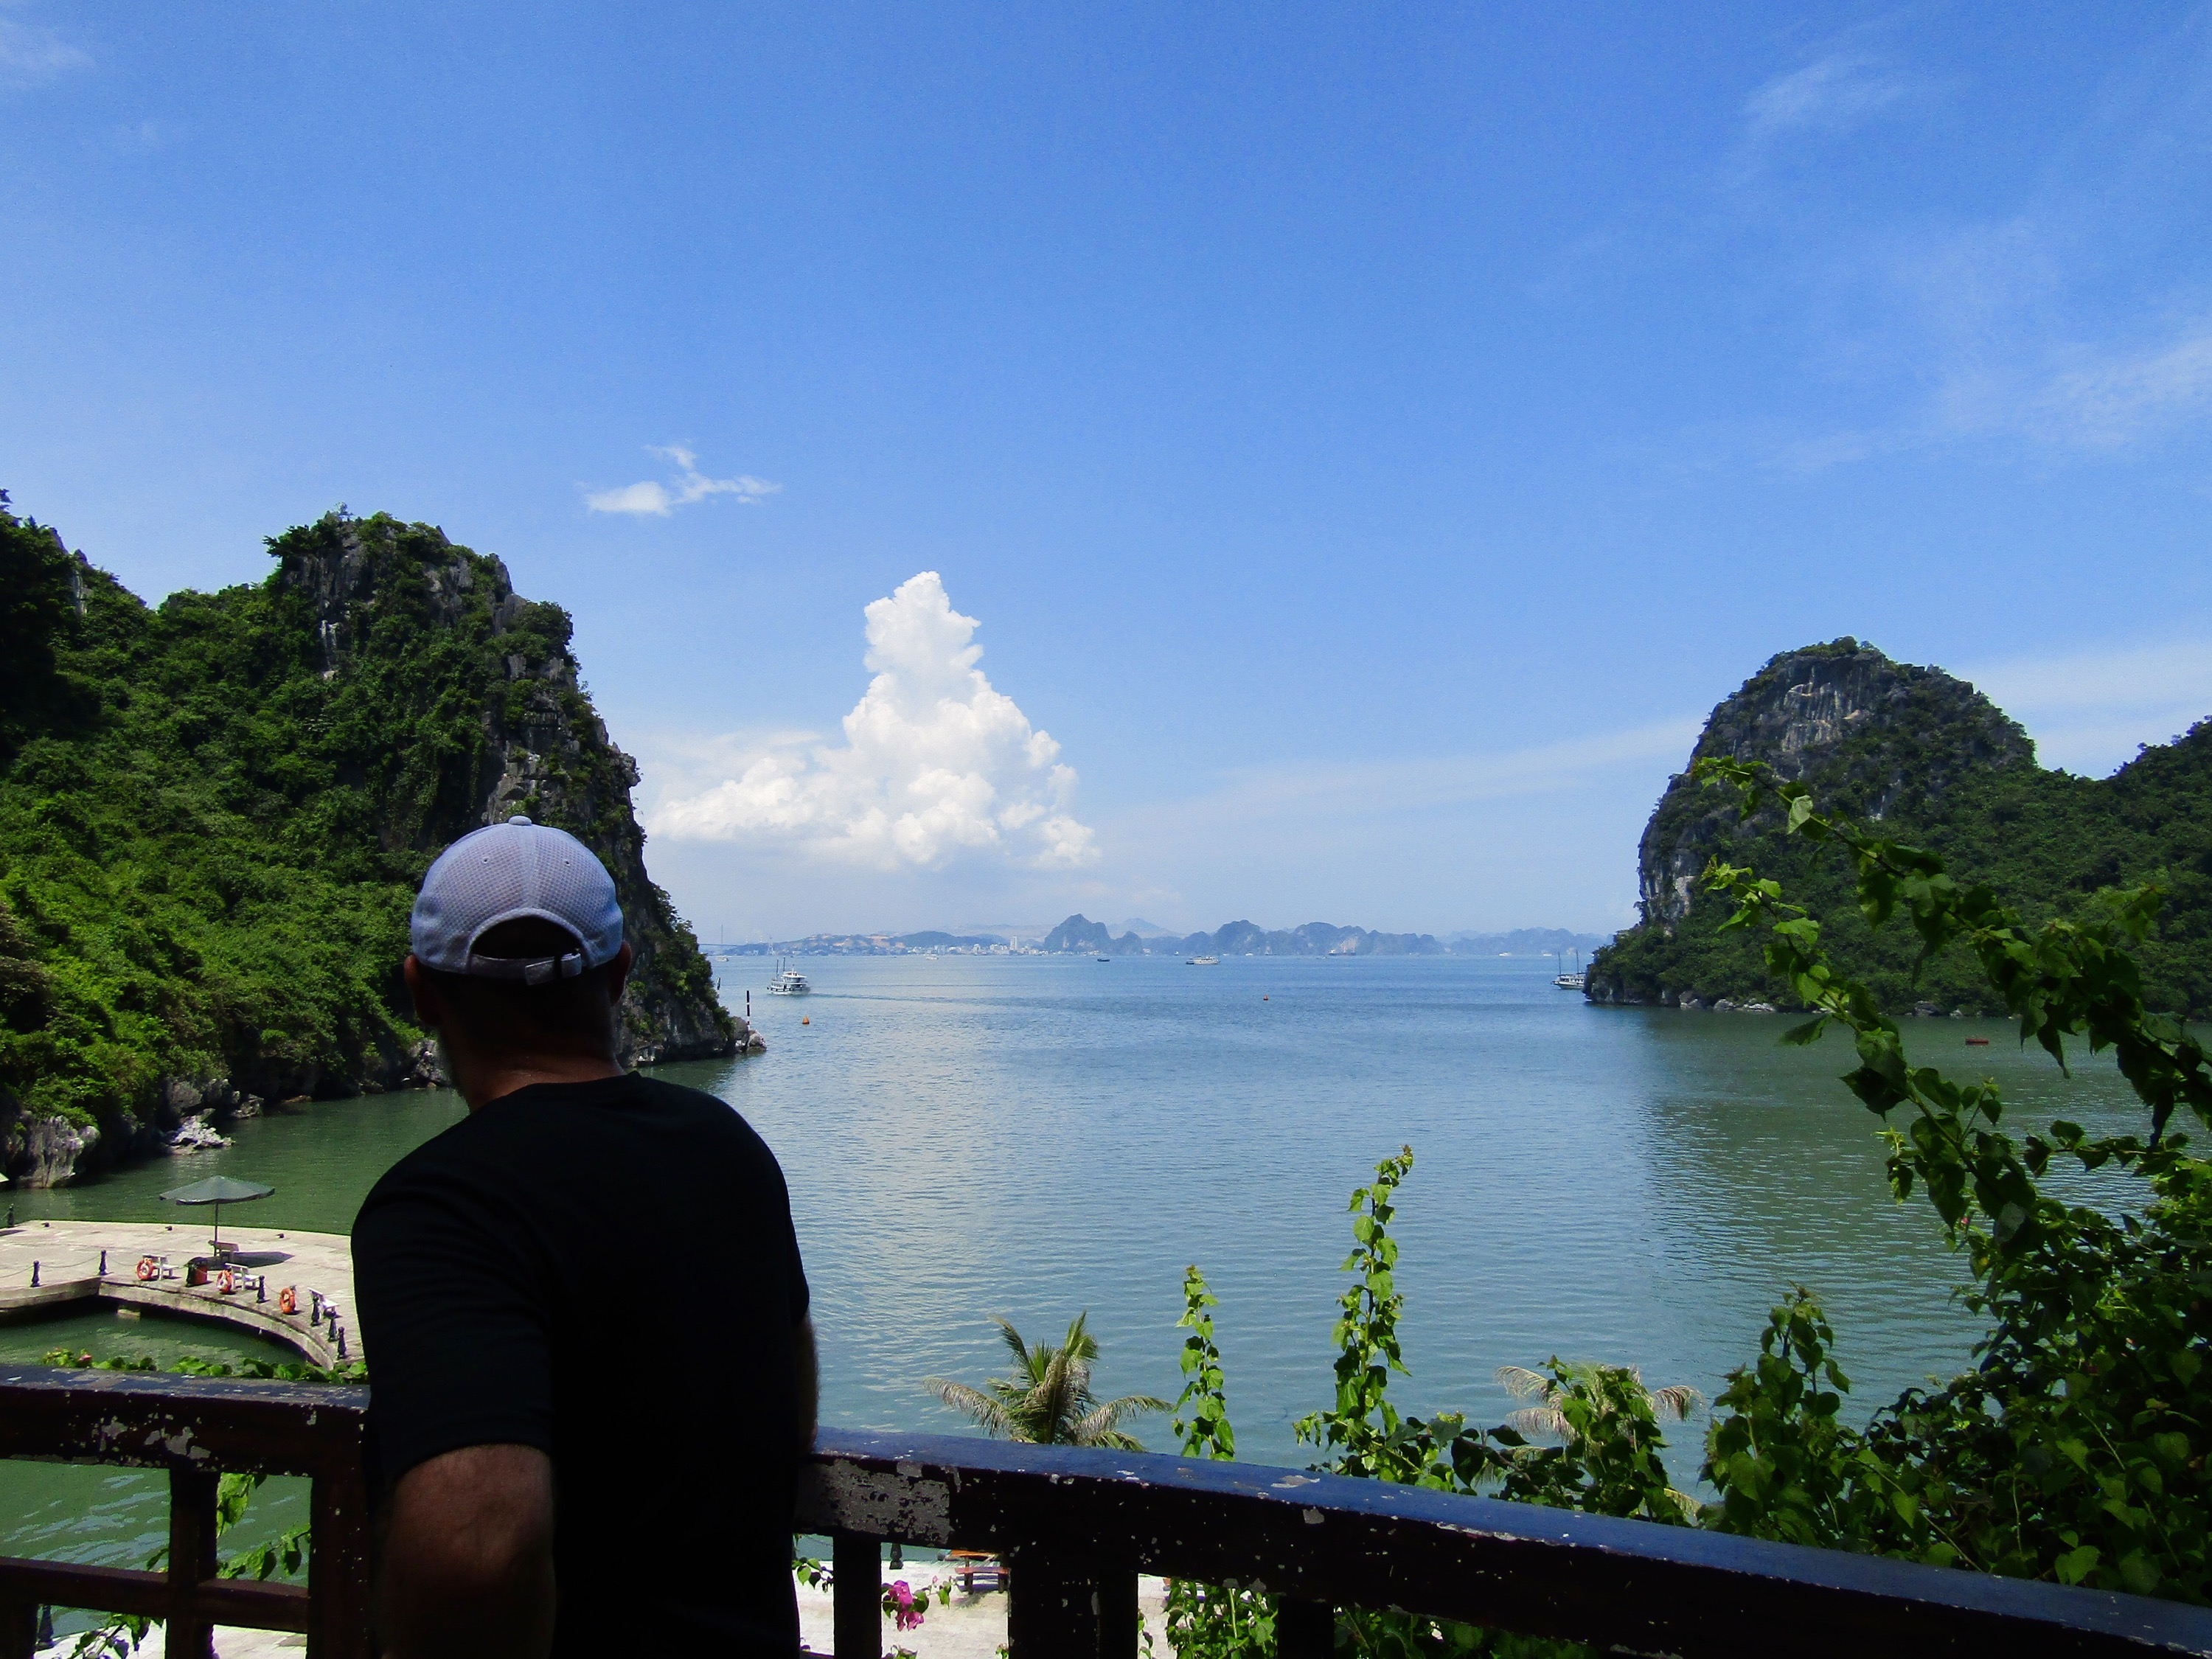 Immediately upon arriving in Halong City, we boarded a boat and set course for a harbor on Bo Hon Island. The view back to the city over the Gulf of Tonkin was magnificent.